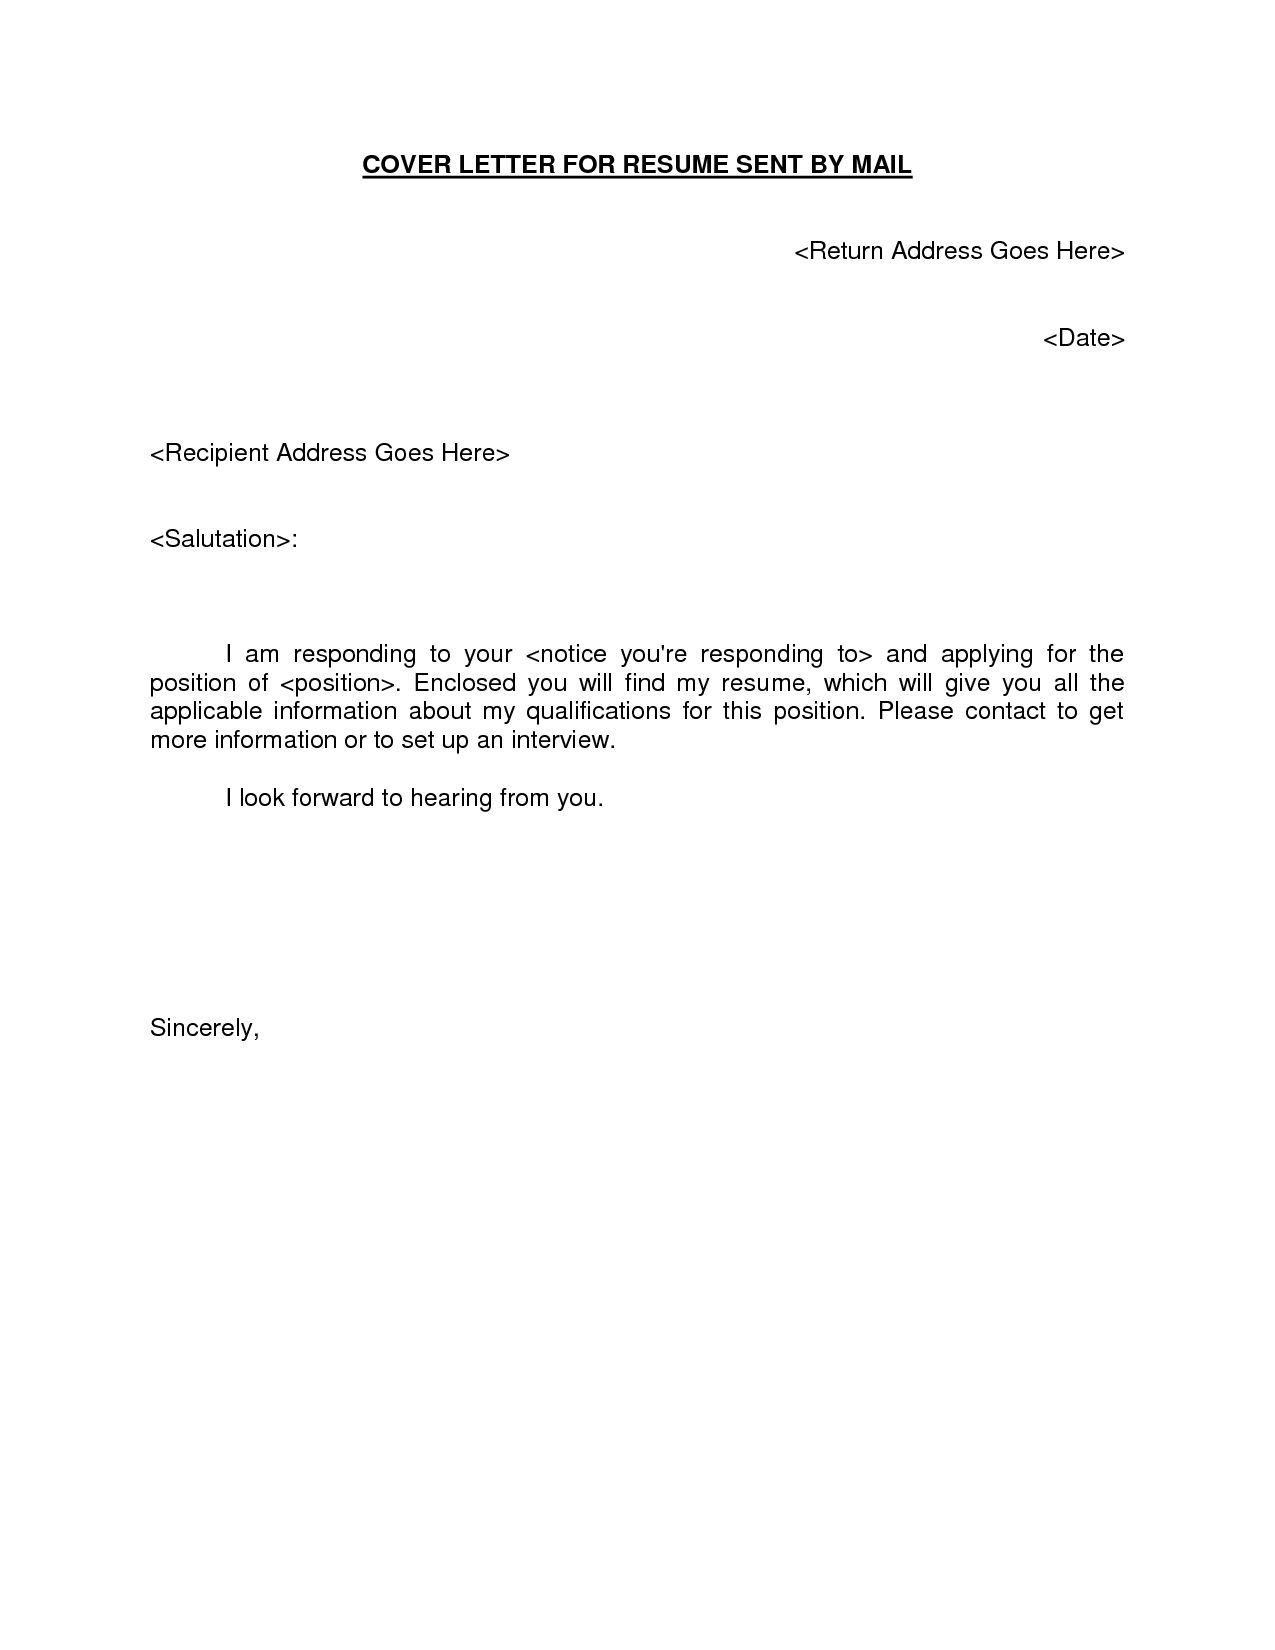 002 Formidable Email Cover Letter Example For Resume Idea  Sample Through AttachedFull